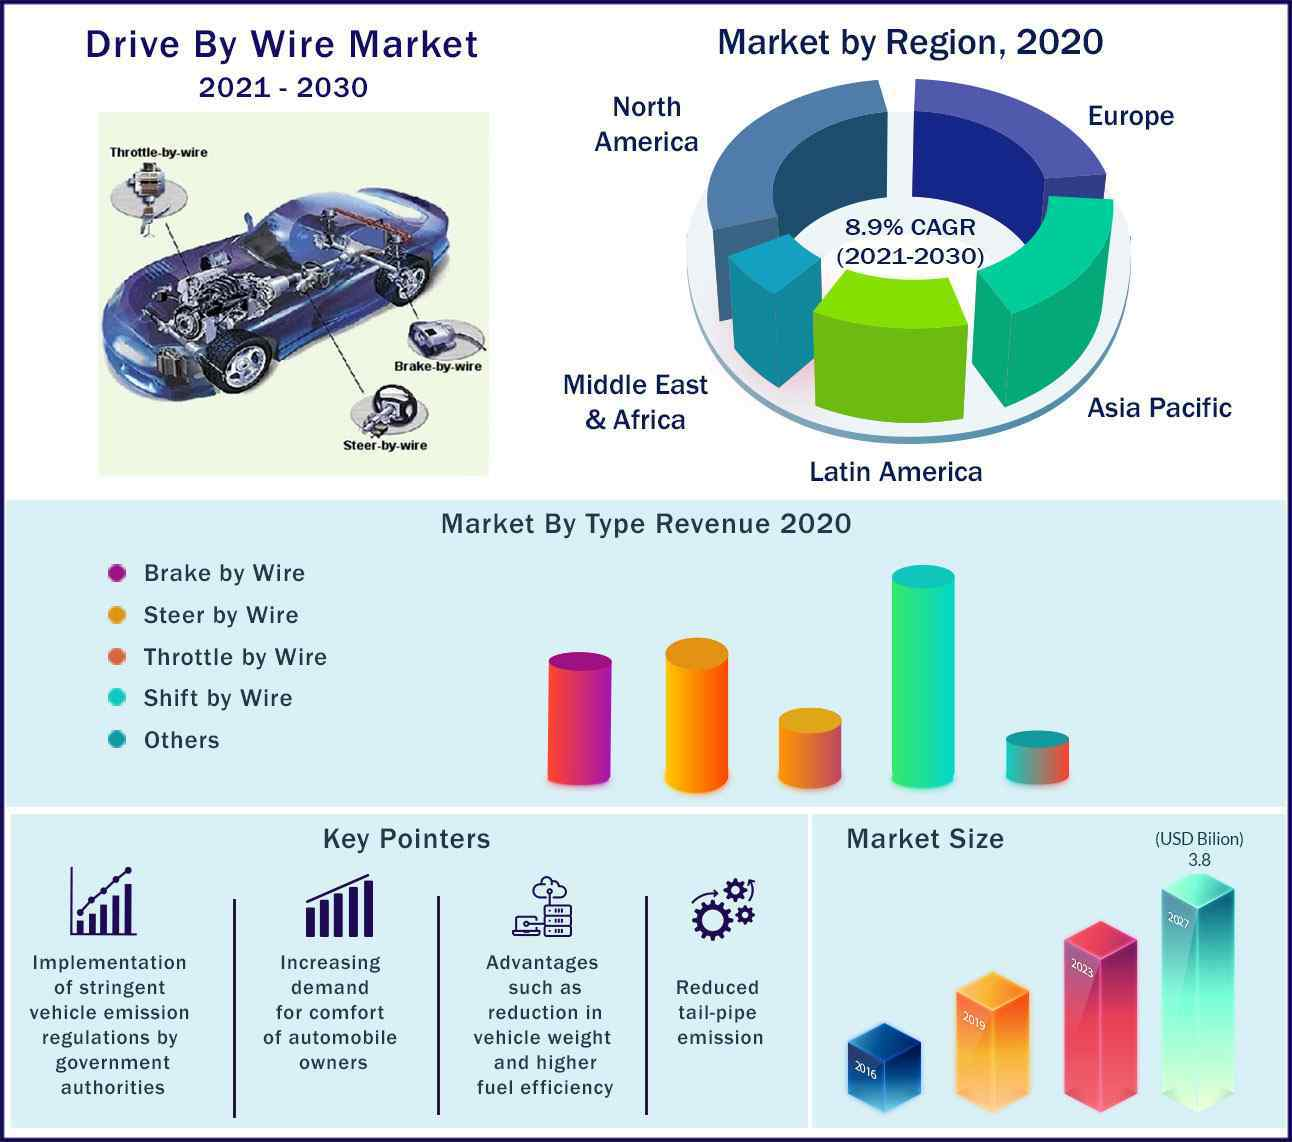 Global Drive by Wire Market 2021-2030